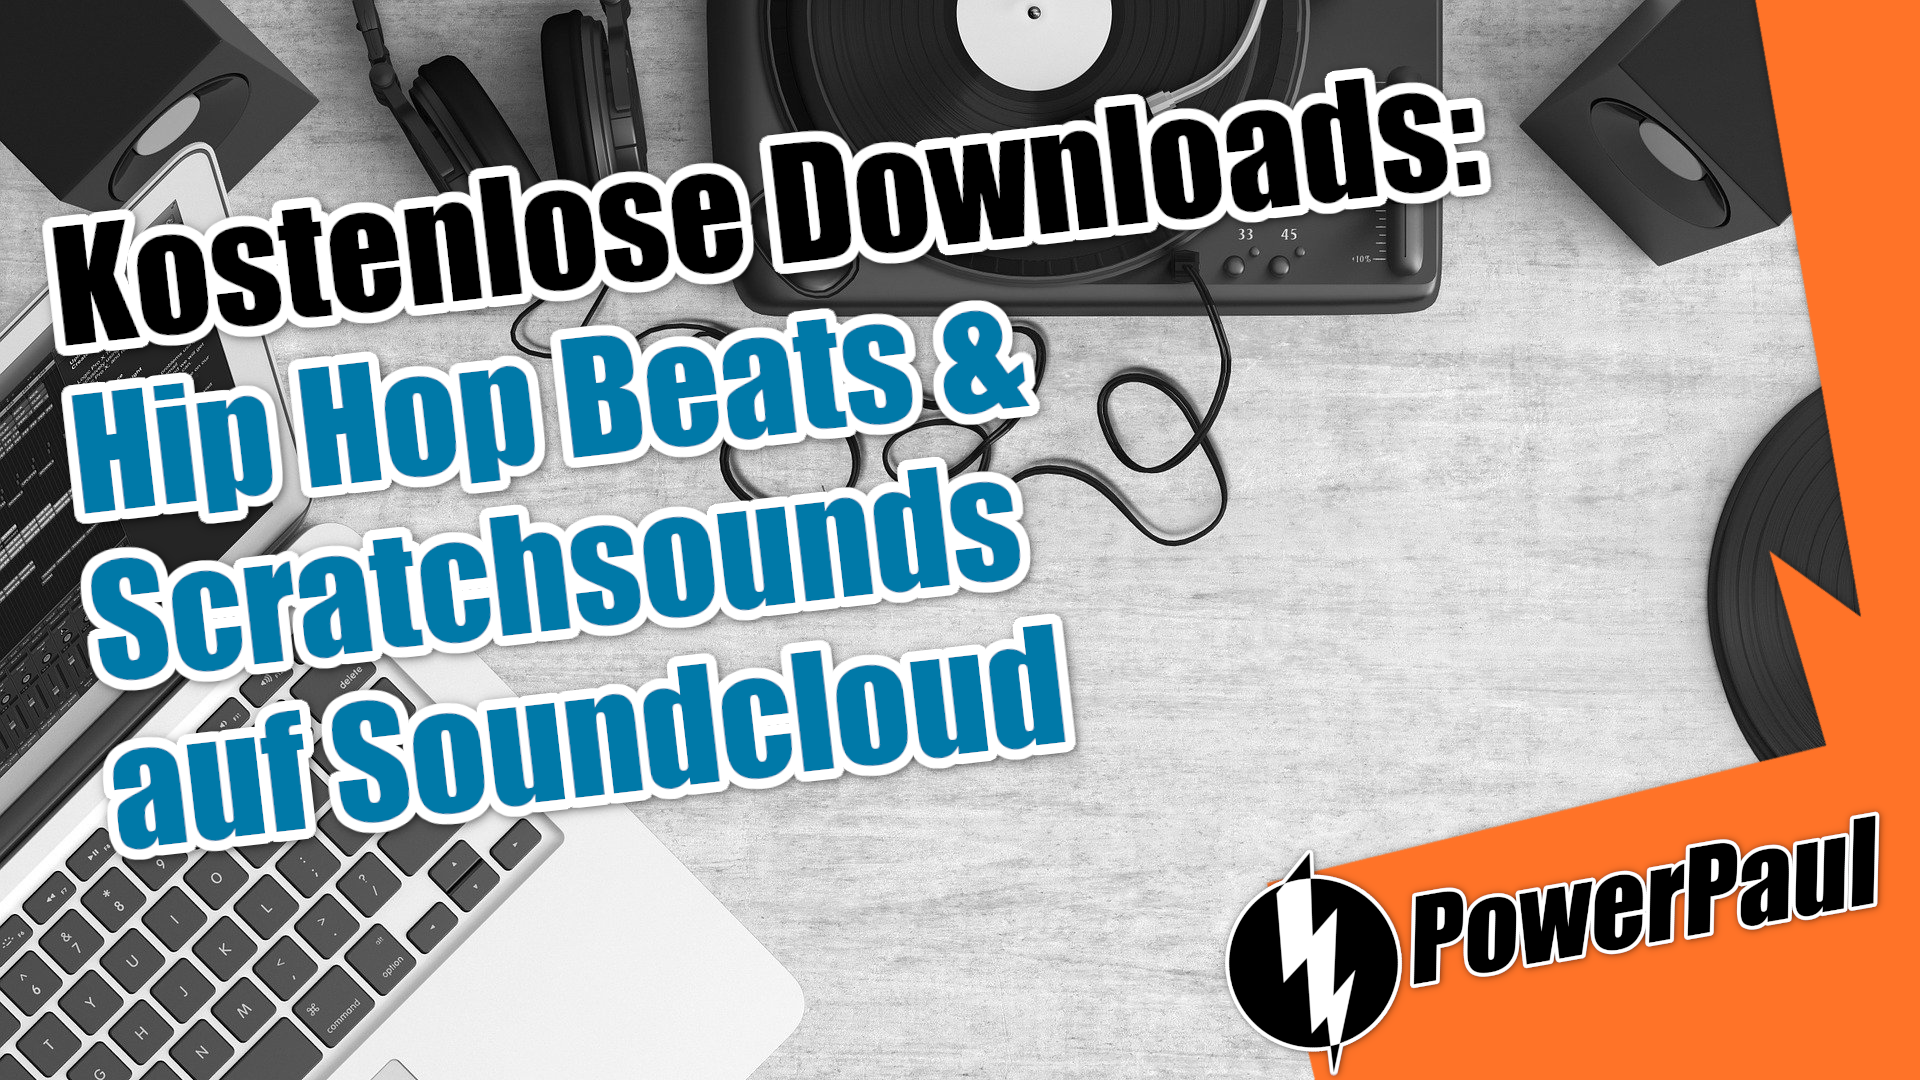 Kostenlose Downloads: Hip Hop Beats & Scratchsounds bei Soundcloud